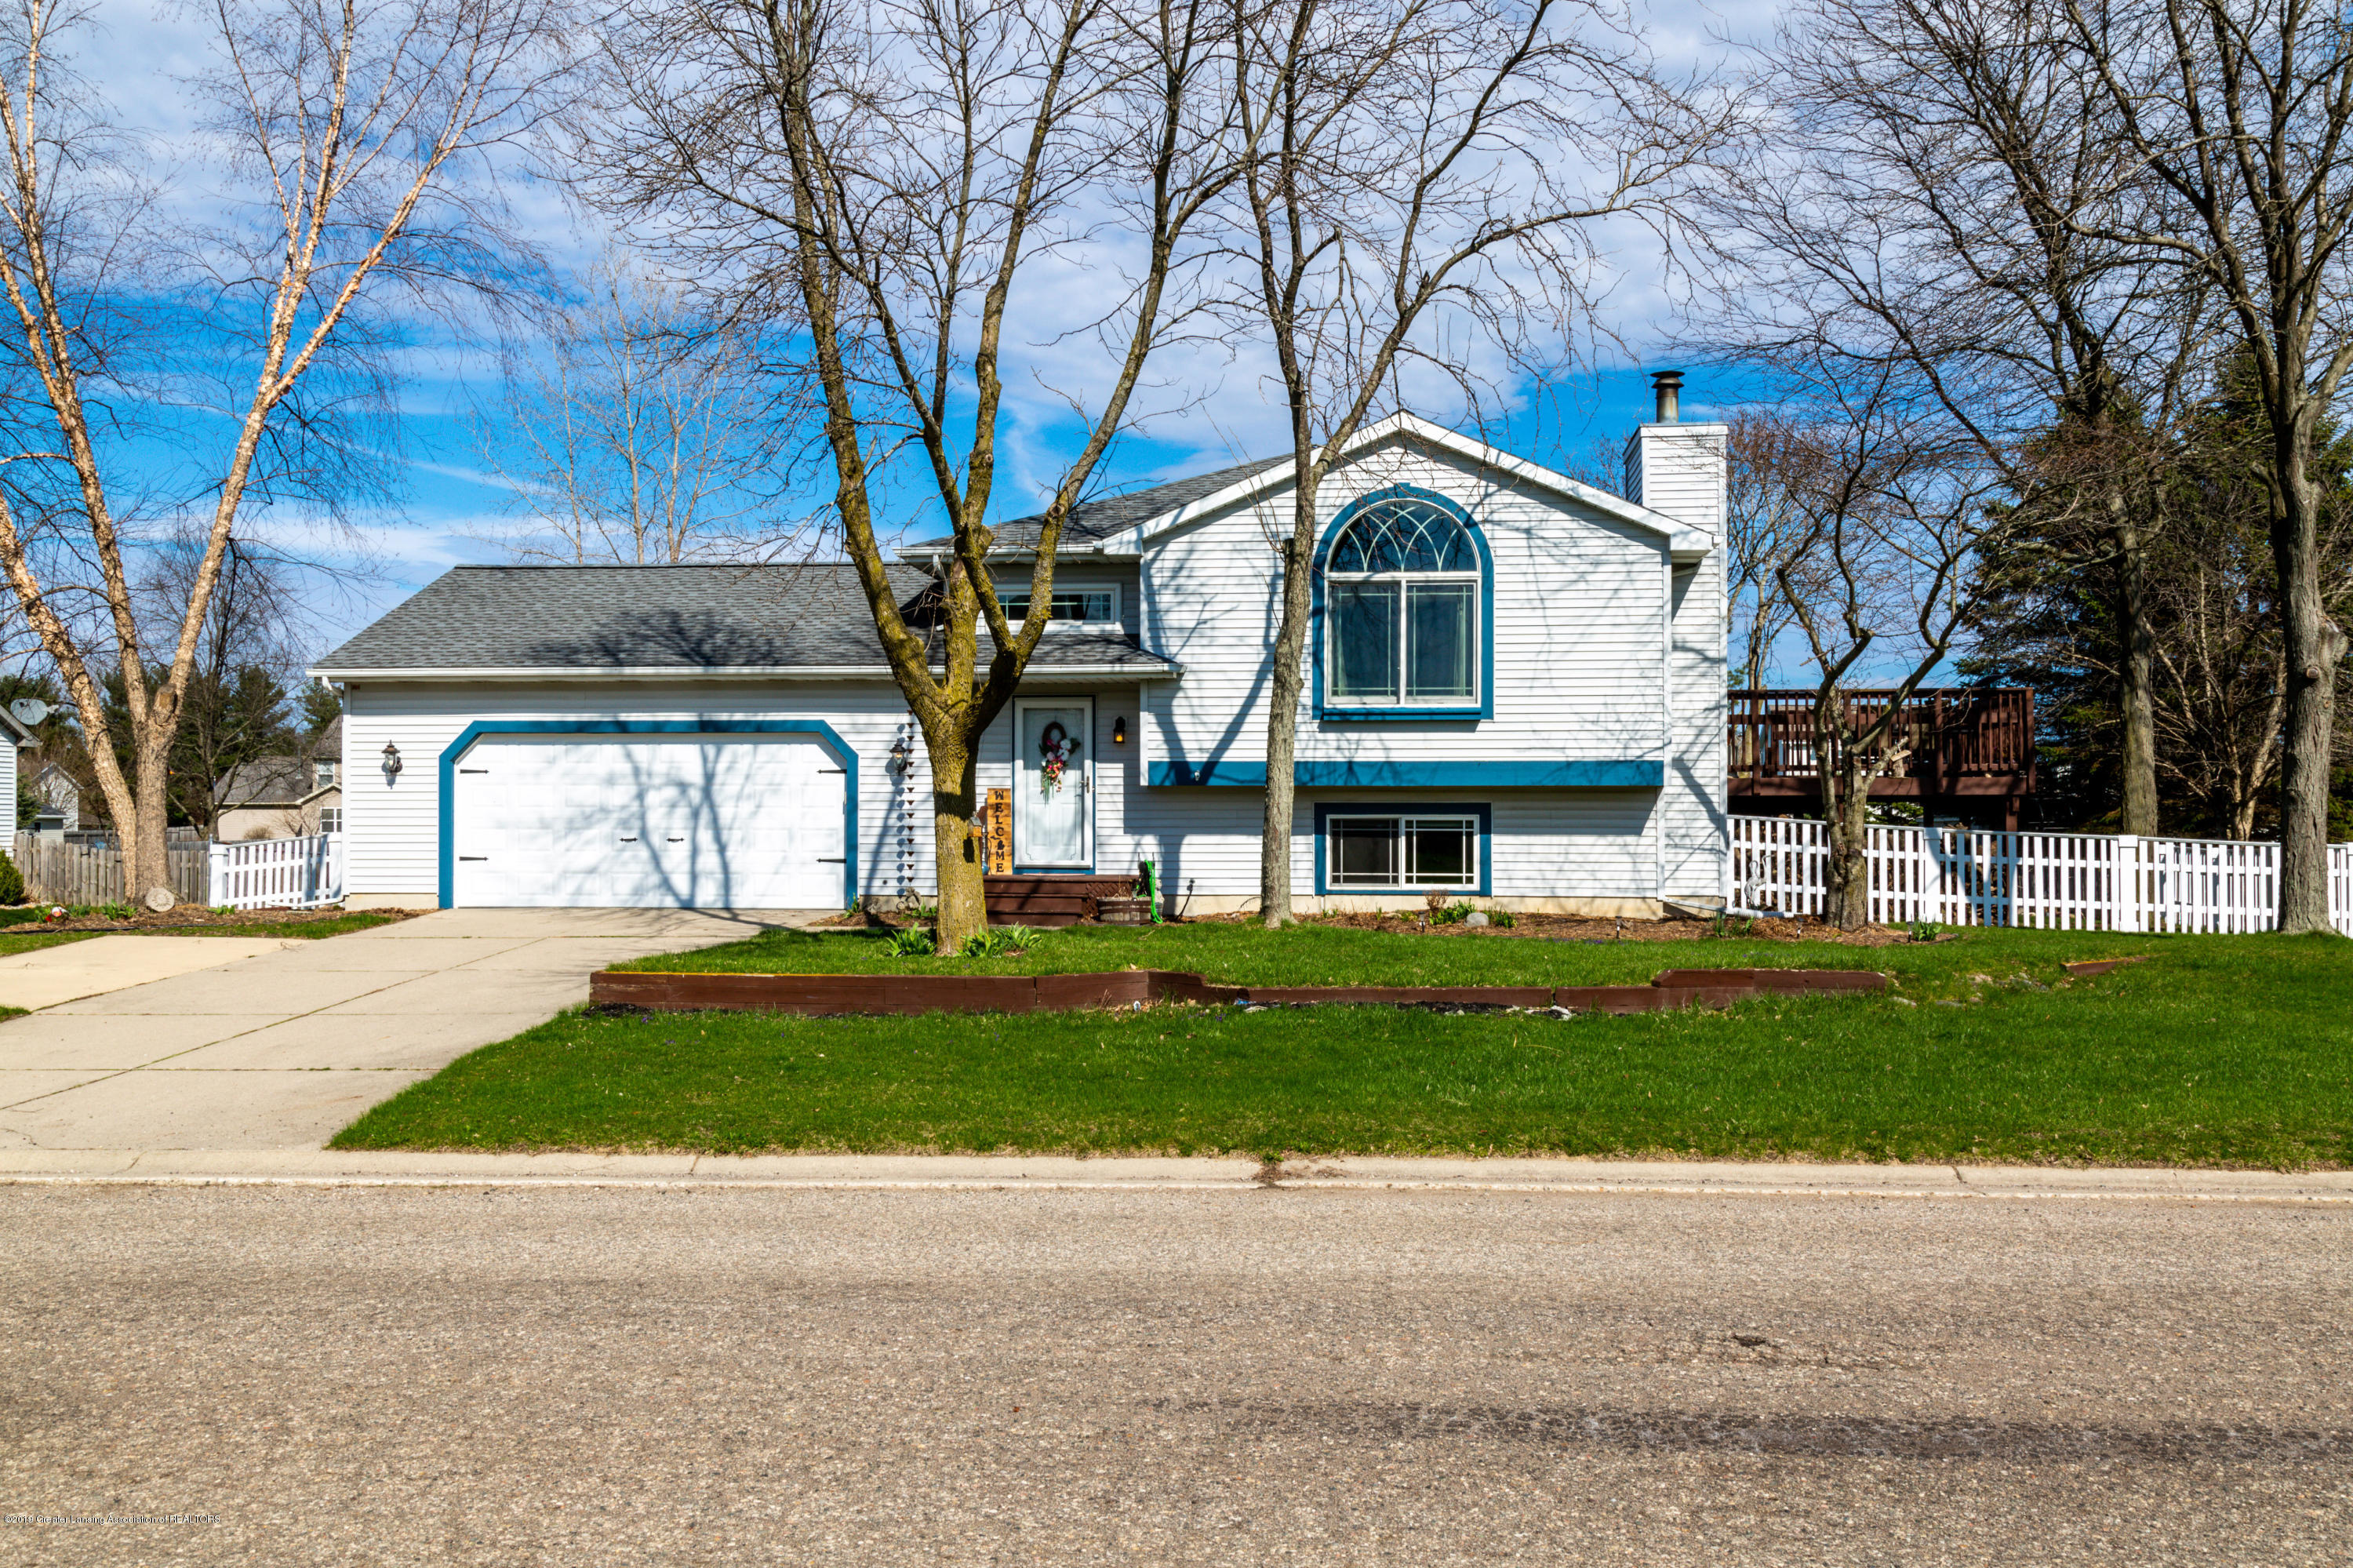 2450 Featherstone Dr - 20190421-942A2200 - 38